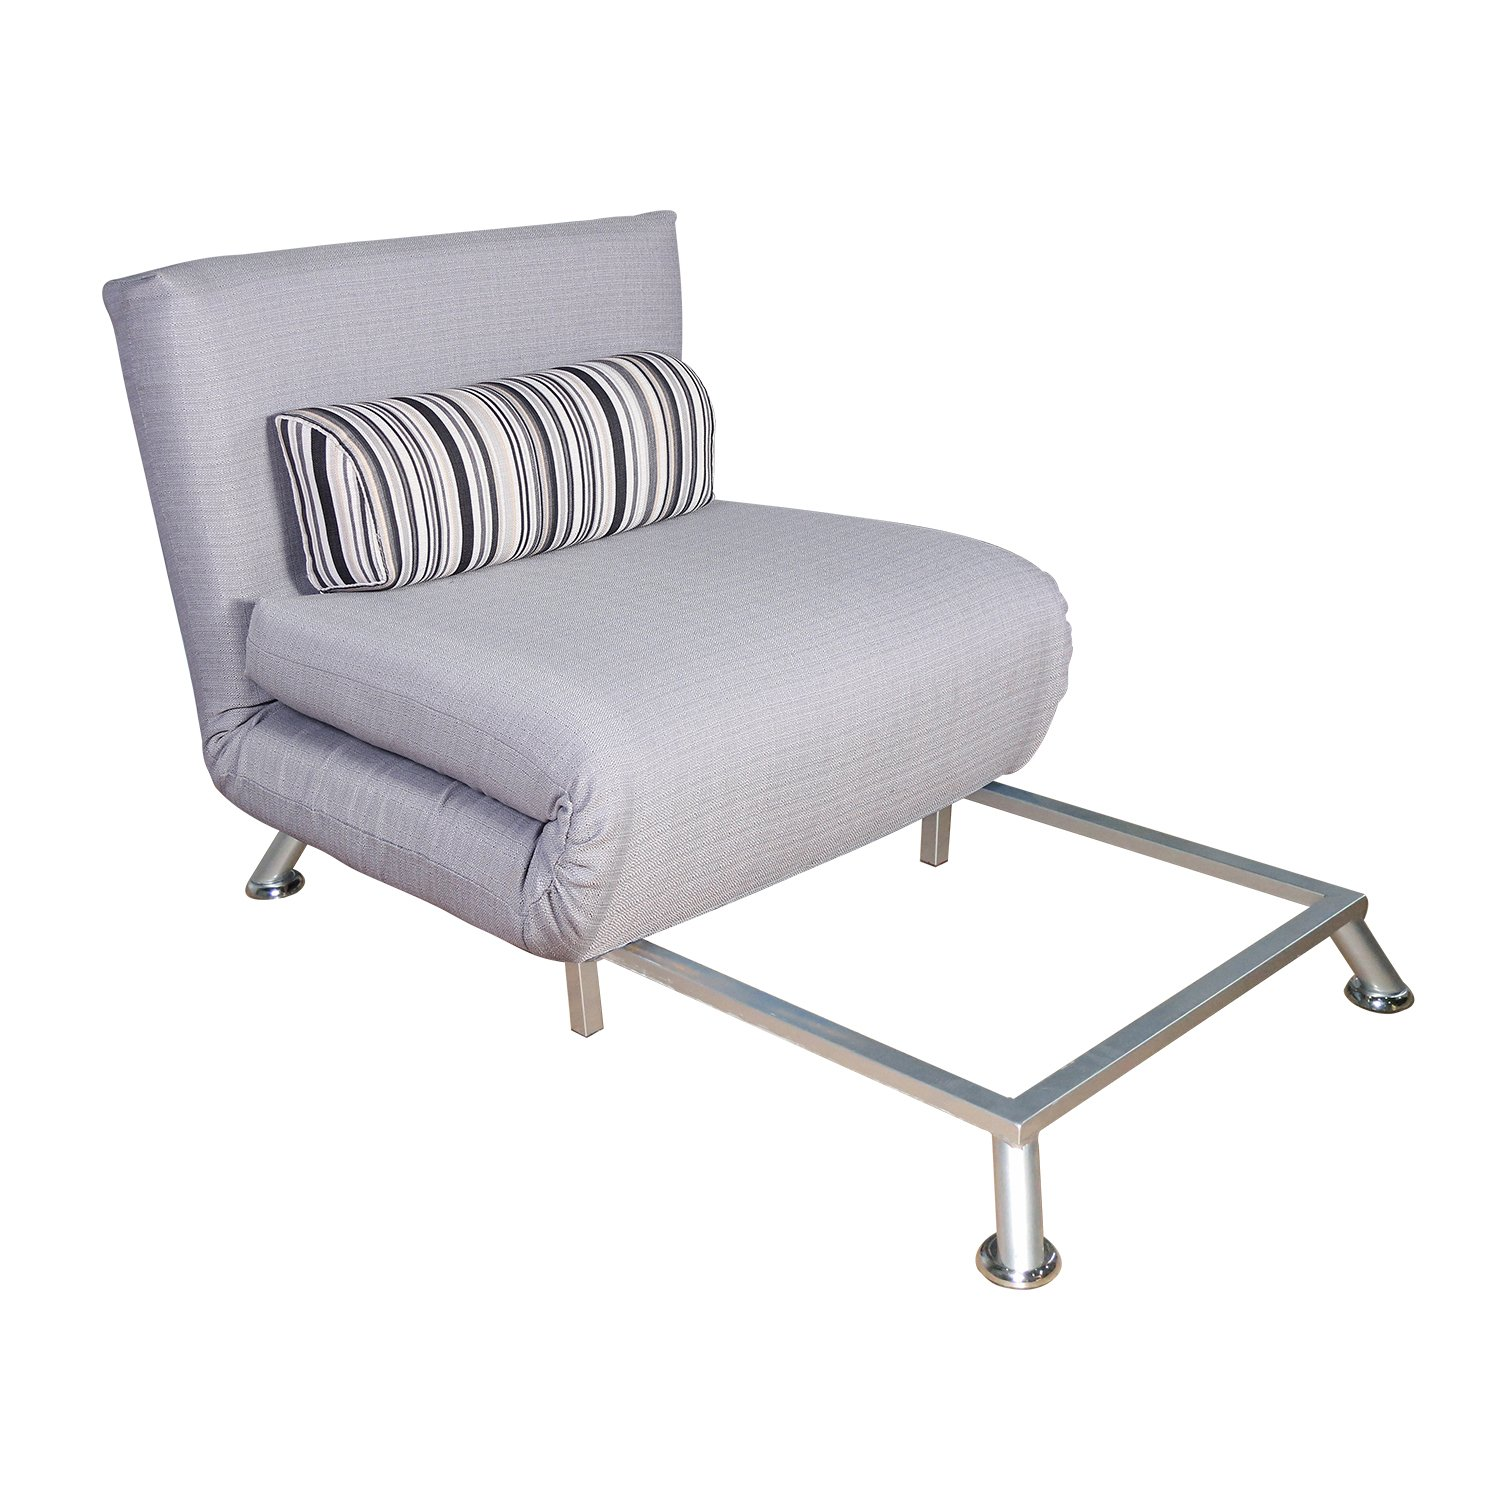 Folding bed chair - Folding Bed Chair 32